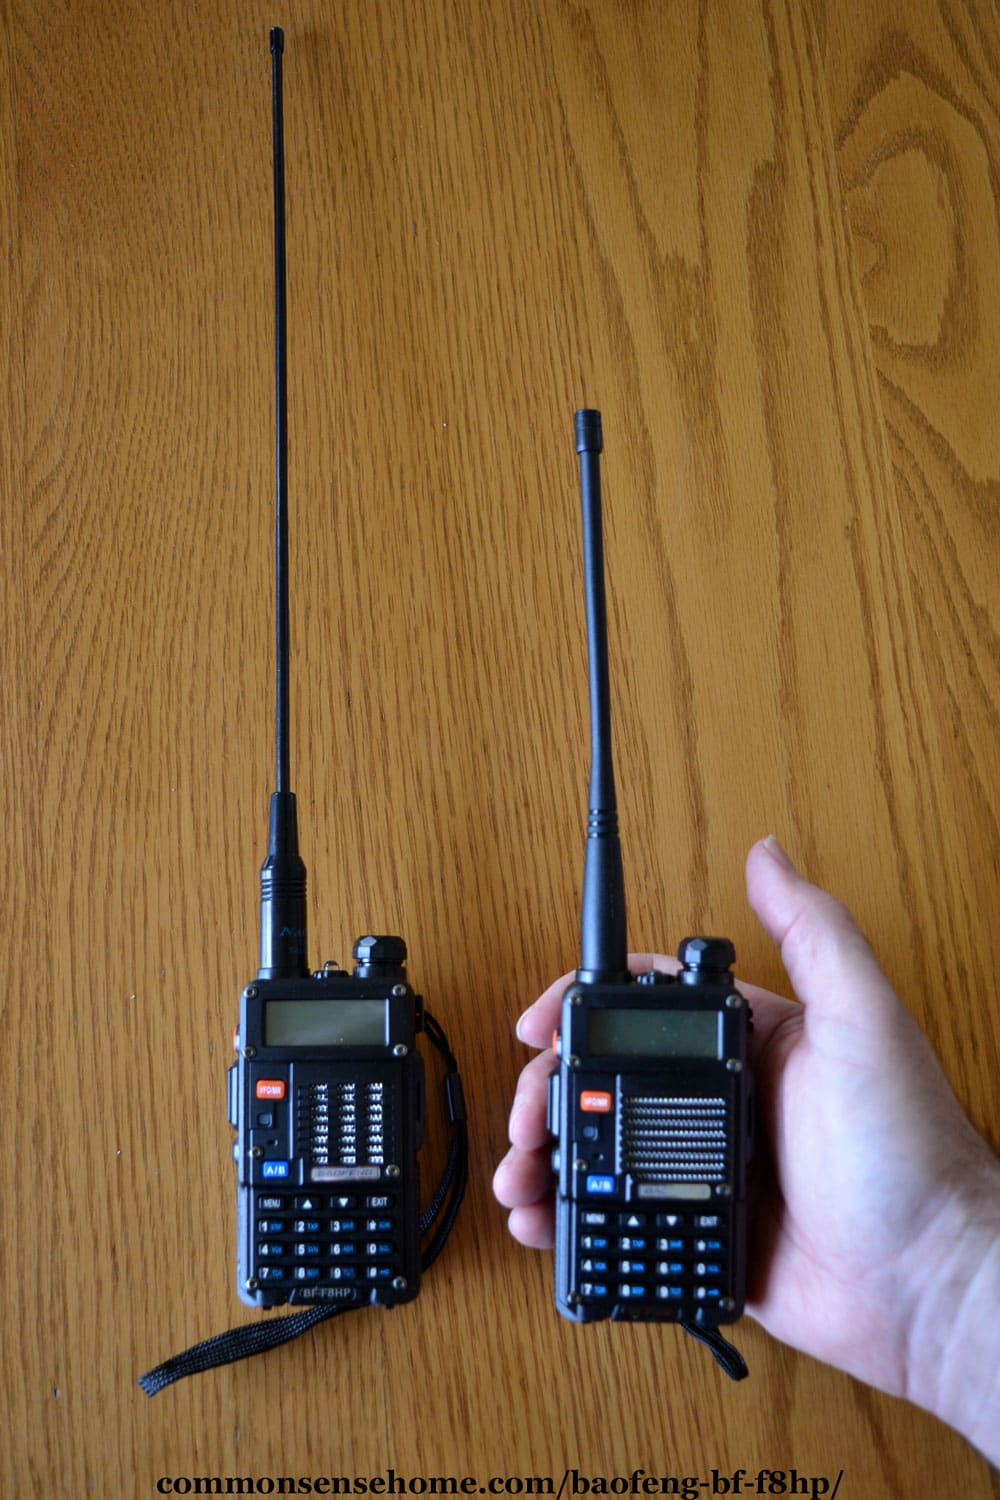 BAOFENG BF-F8HP with and without Nagoya whip antenna